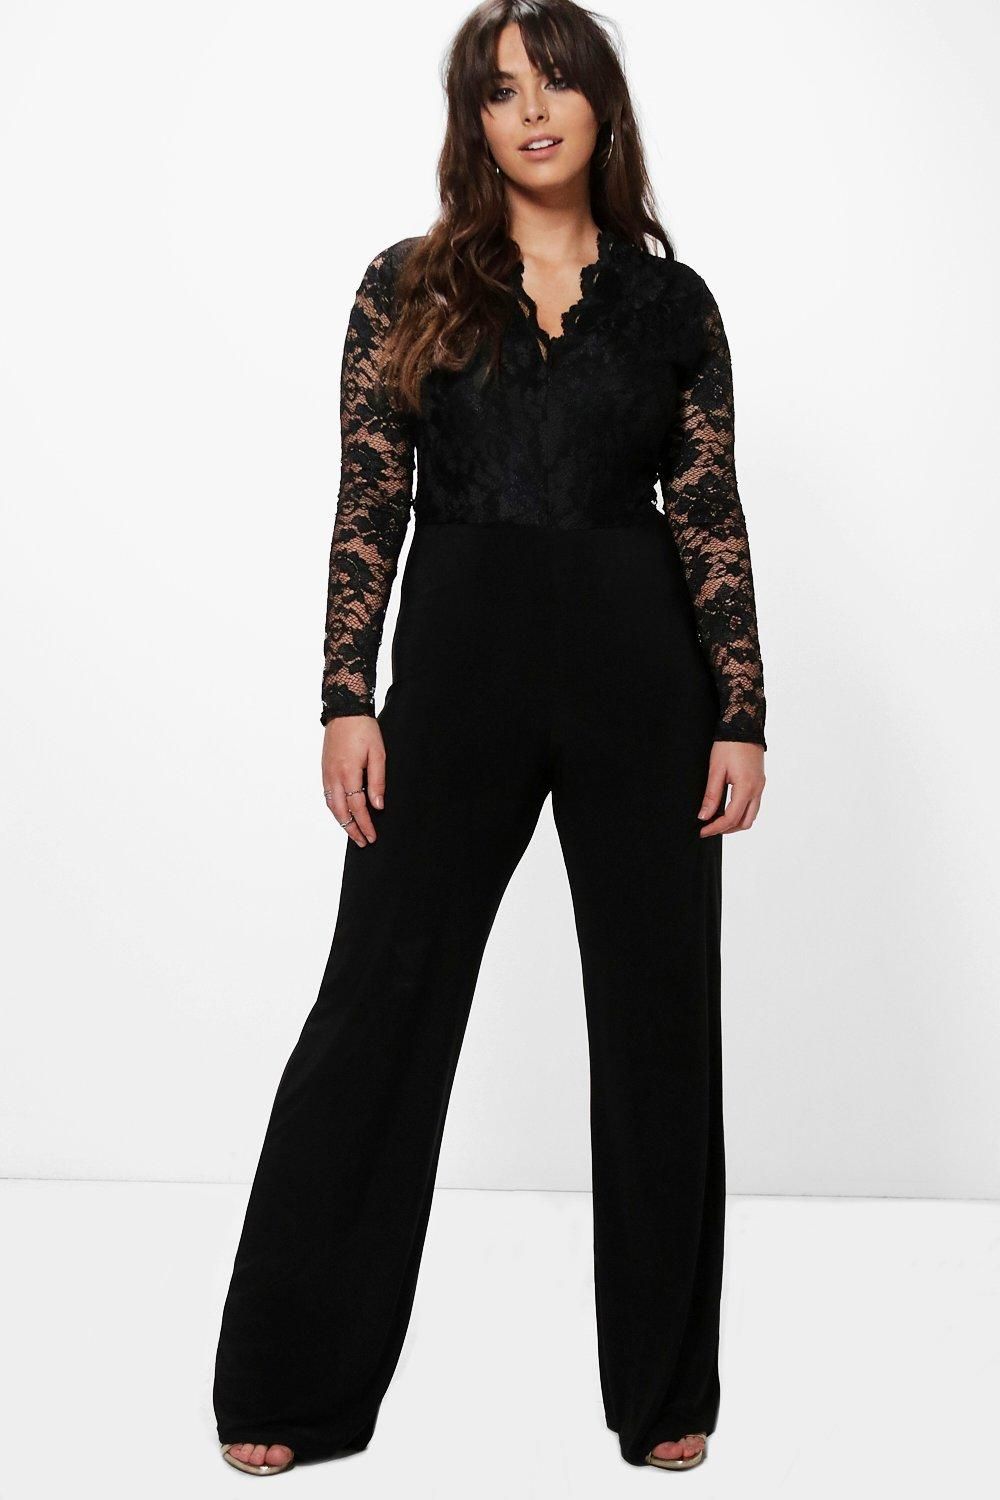 Plus Size Playsuits | Plus size Jumpsuits | boohoo.com